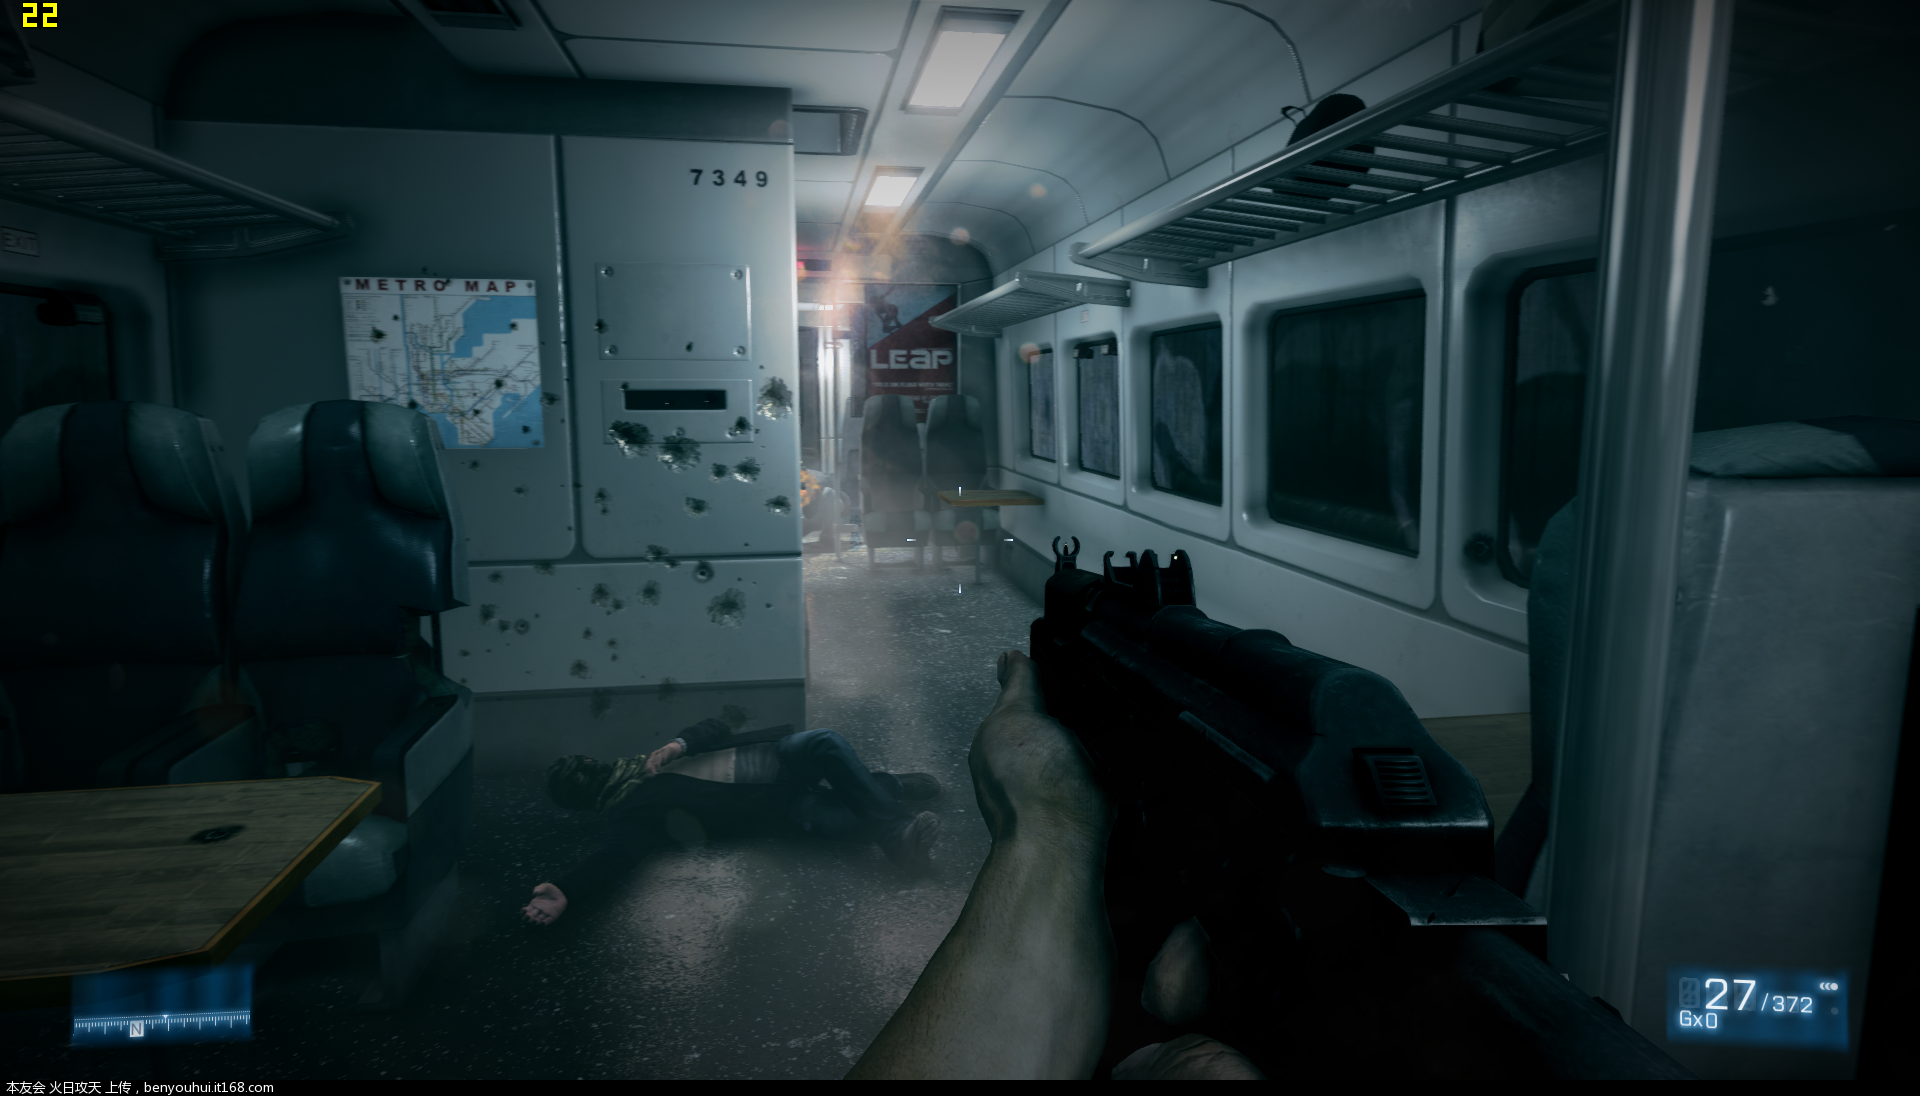 bf3 2012-10-08 18-30-20-62.png